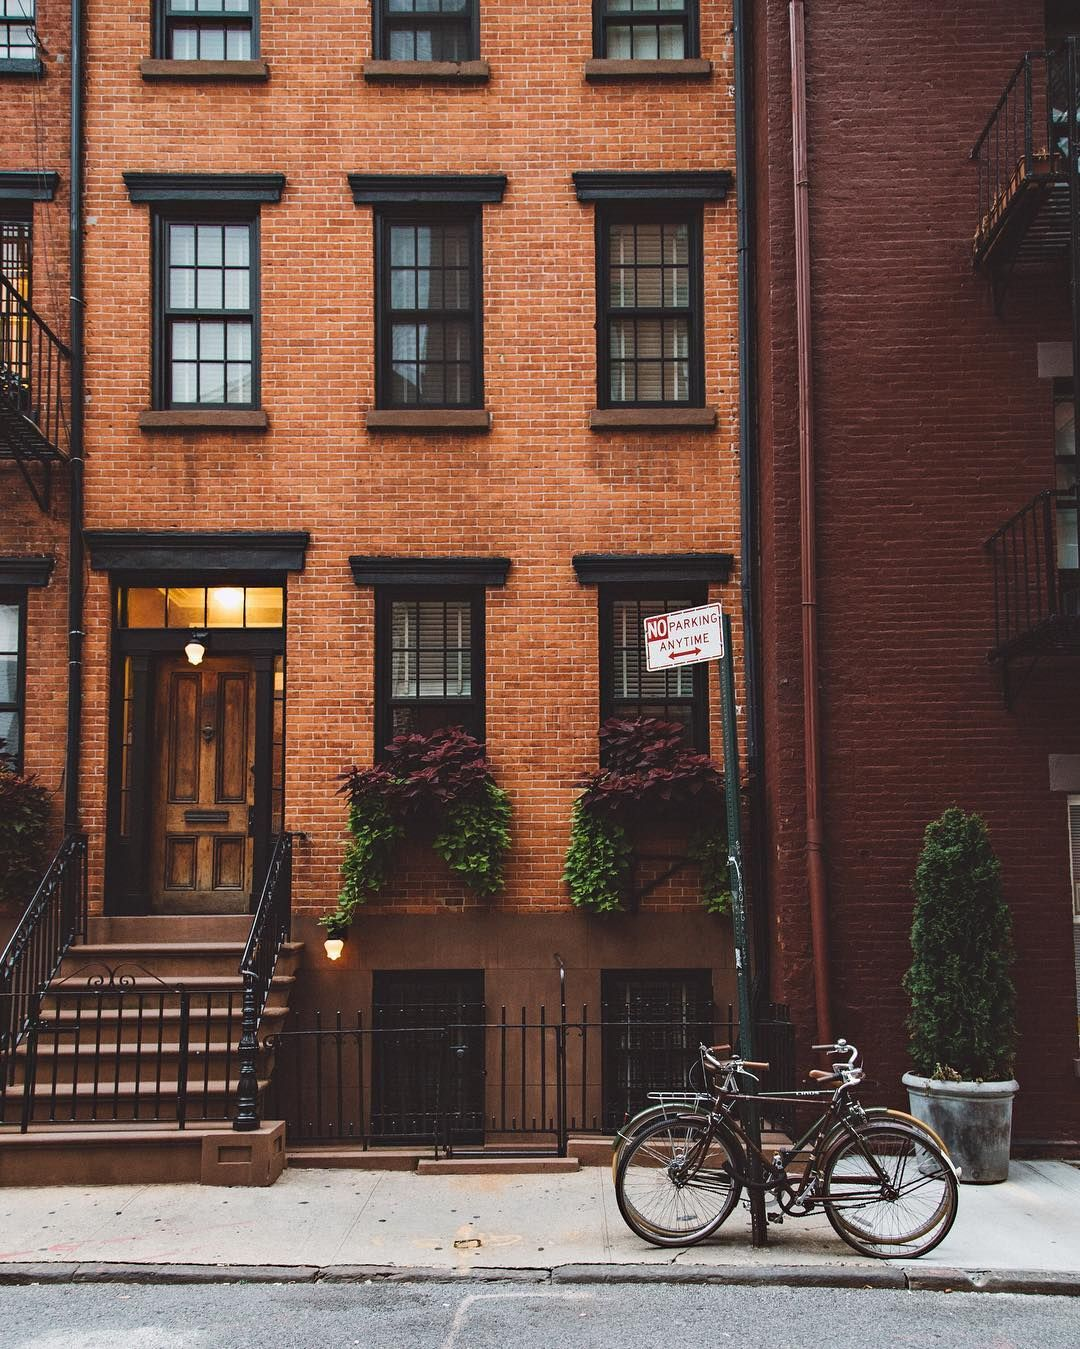 New York City Apartments: Have You Ever Been To New York?